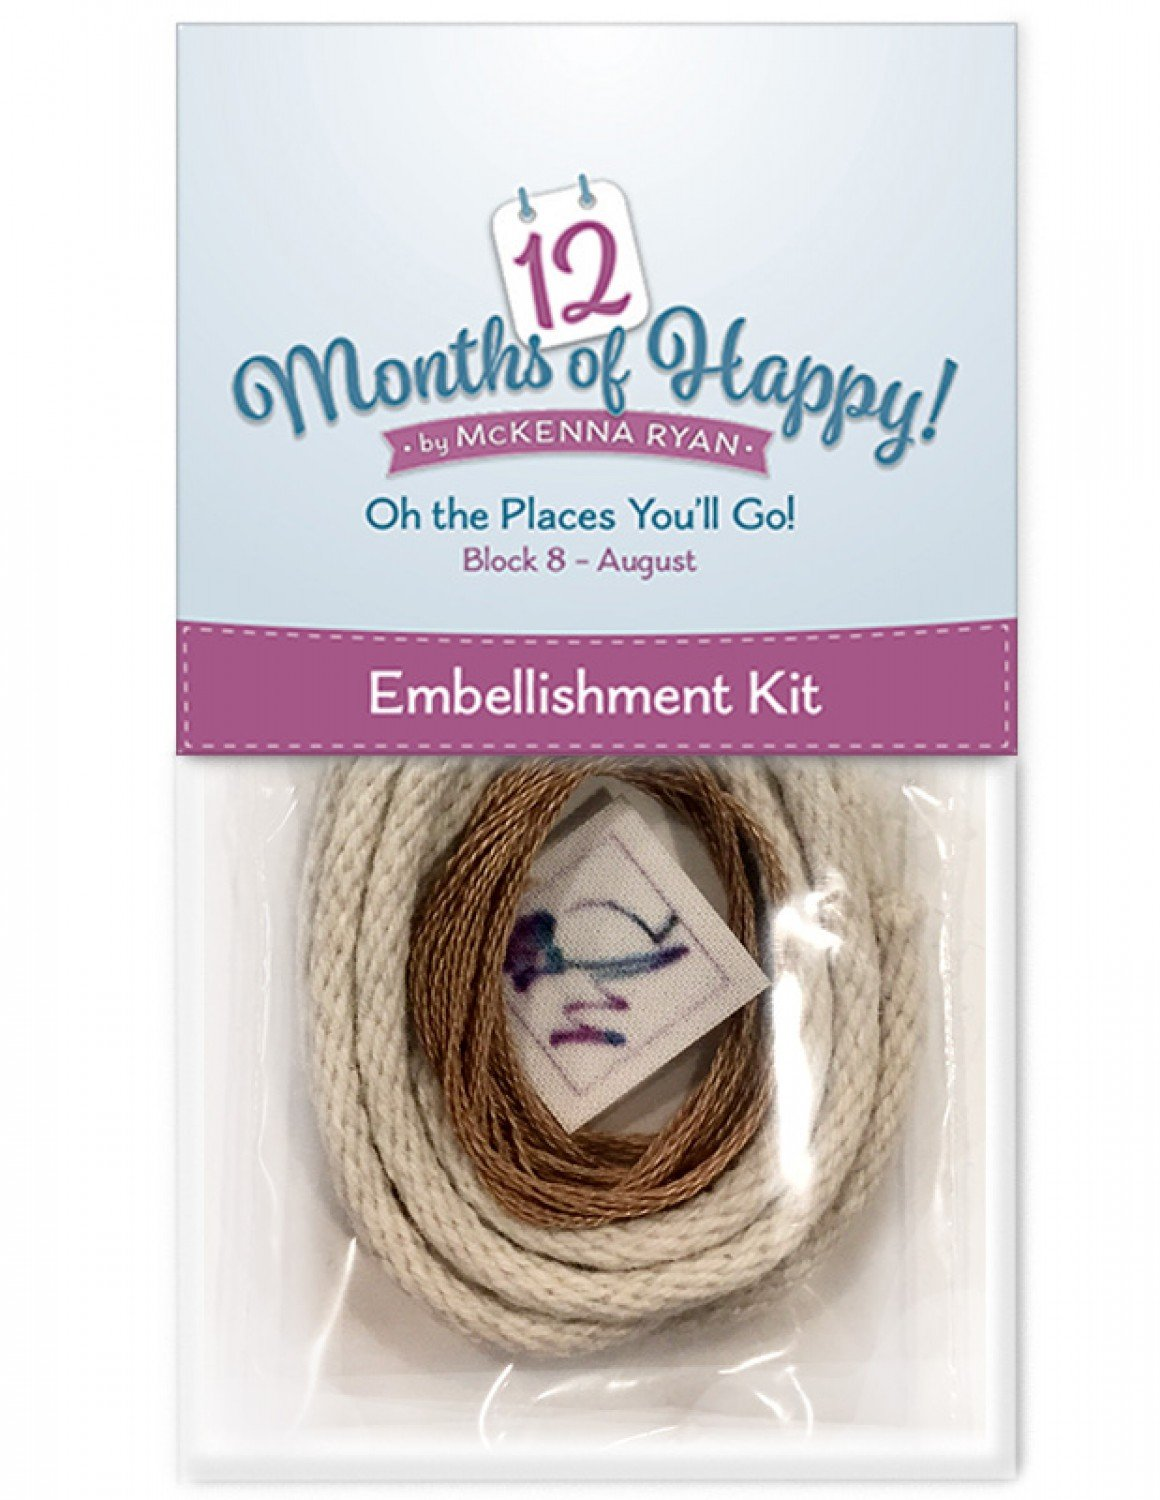 Embellishment Kit for Oh The Places You'll Go for 12 Months of Happy!